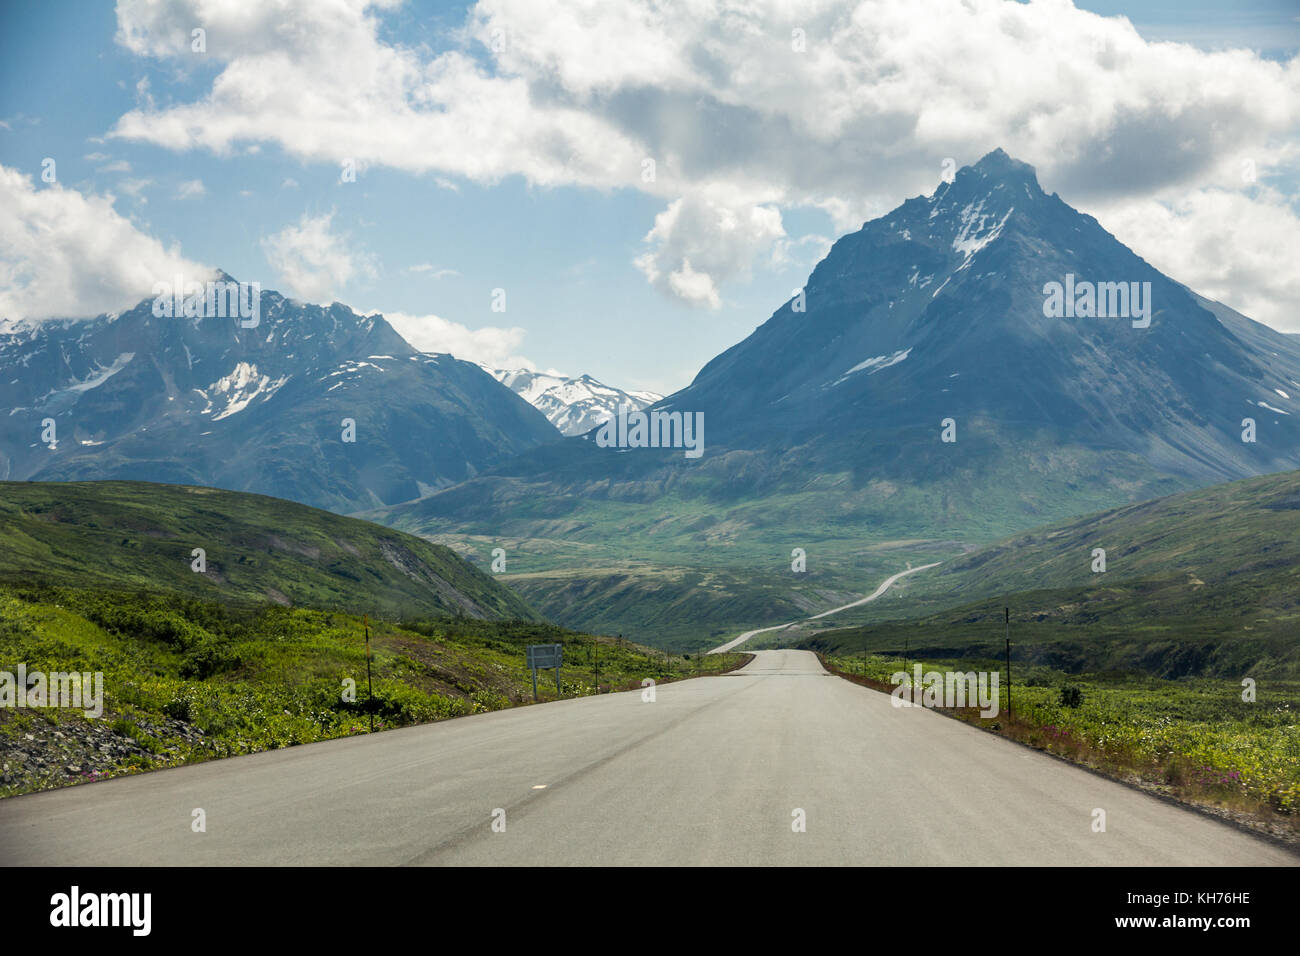 Spectacular Haines Highway takes travelers south from Haines Junction, Yukon Territory in Northern Canada to Haines, - Stock Image